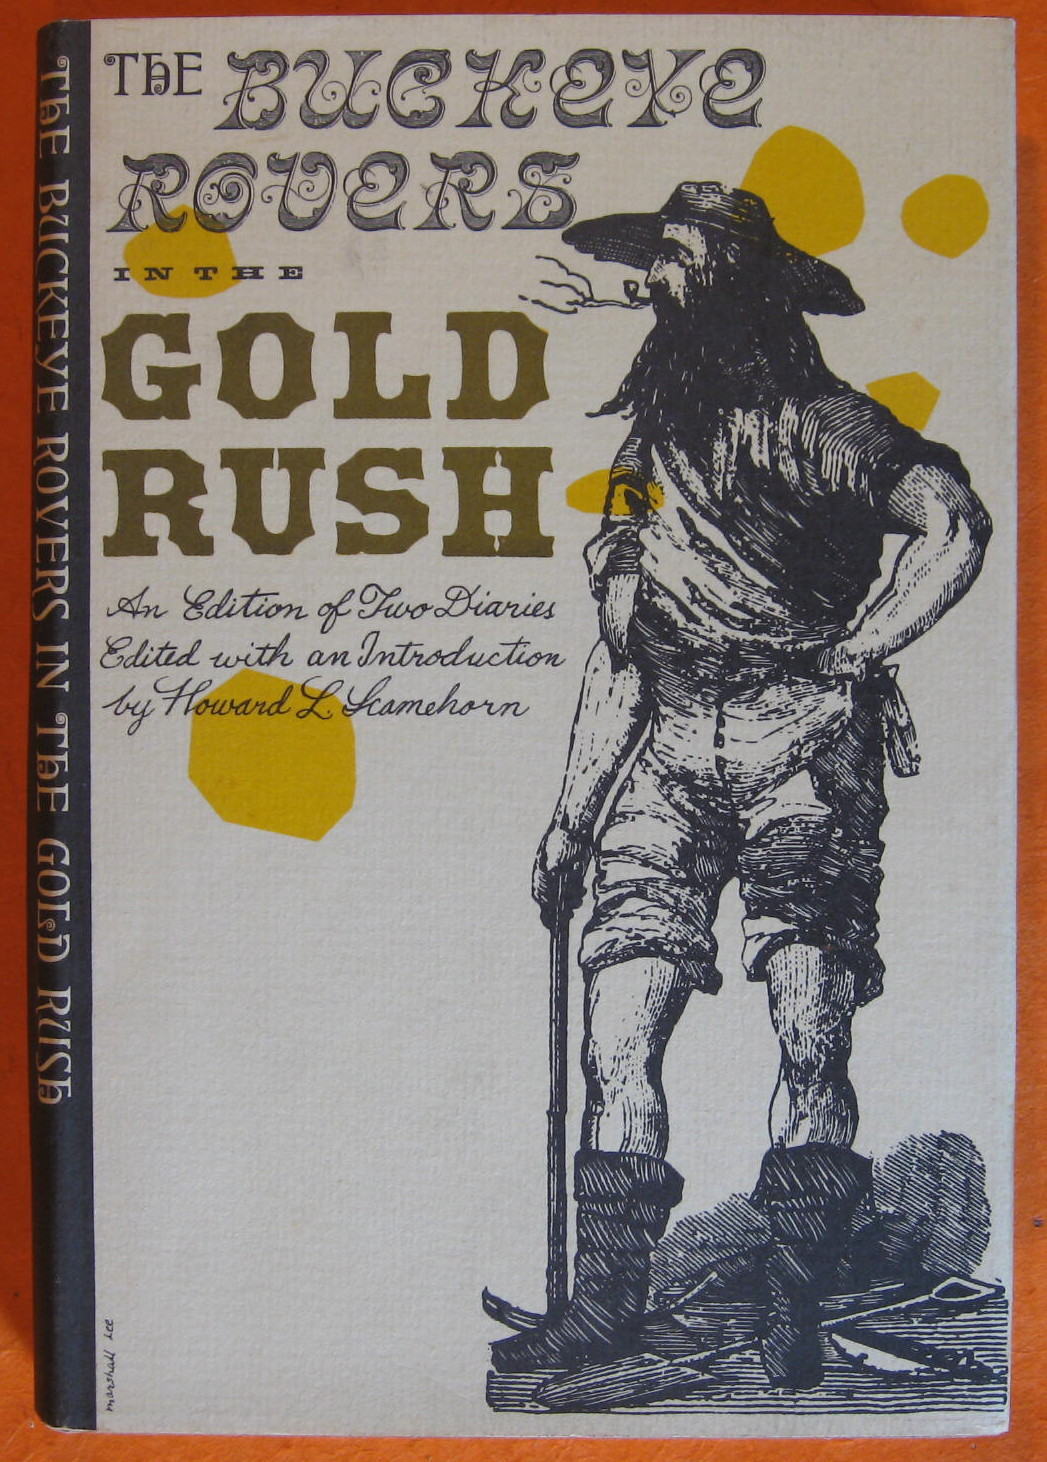 Buckeye Rovers in the Gold Rush; an Edition of Two Diaries, Banks, John;  Armstrong; Scamehorn, Howard L. (ed.)